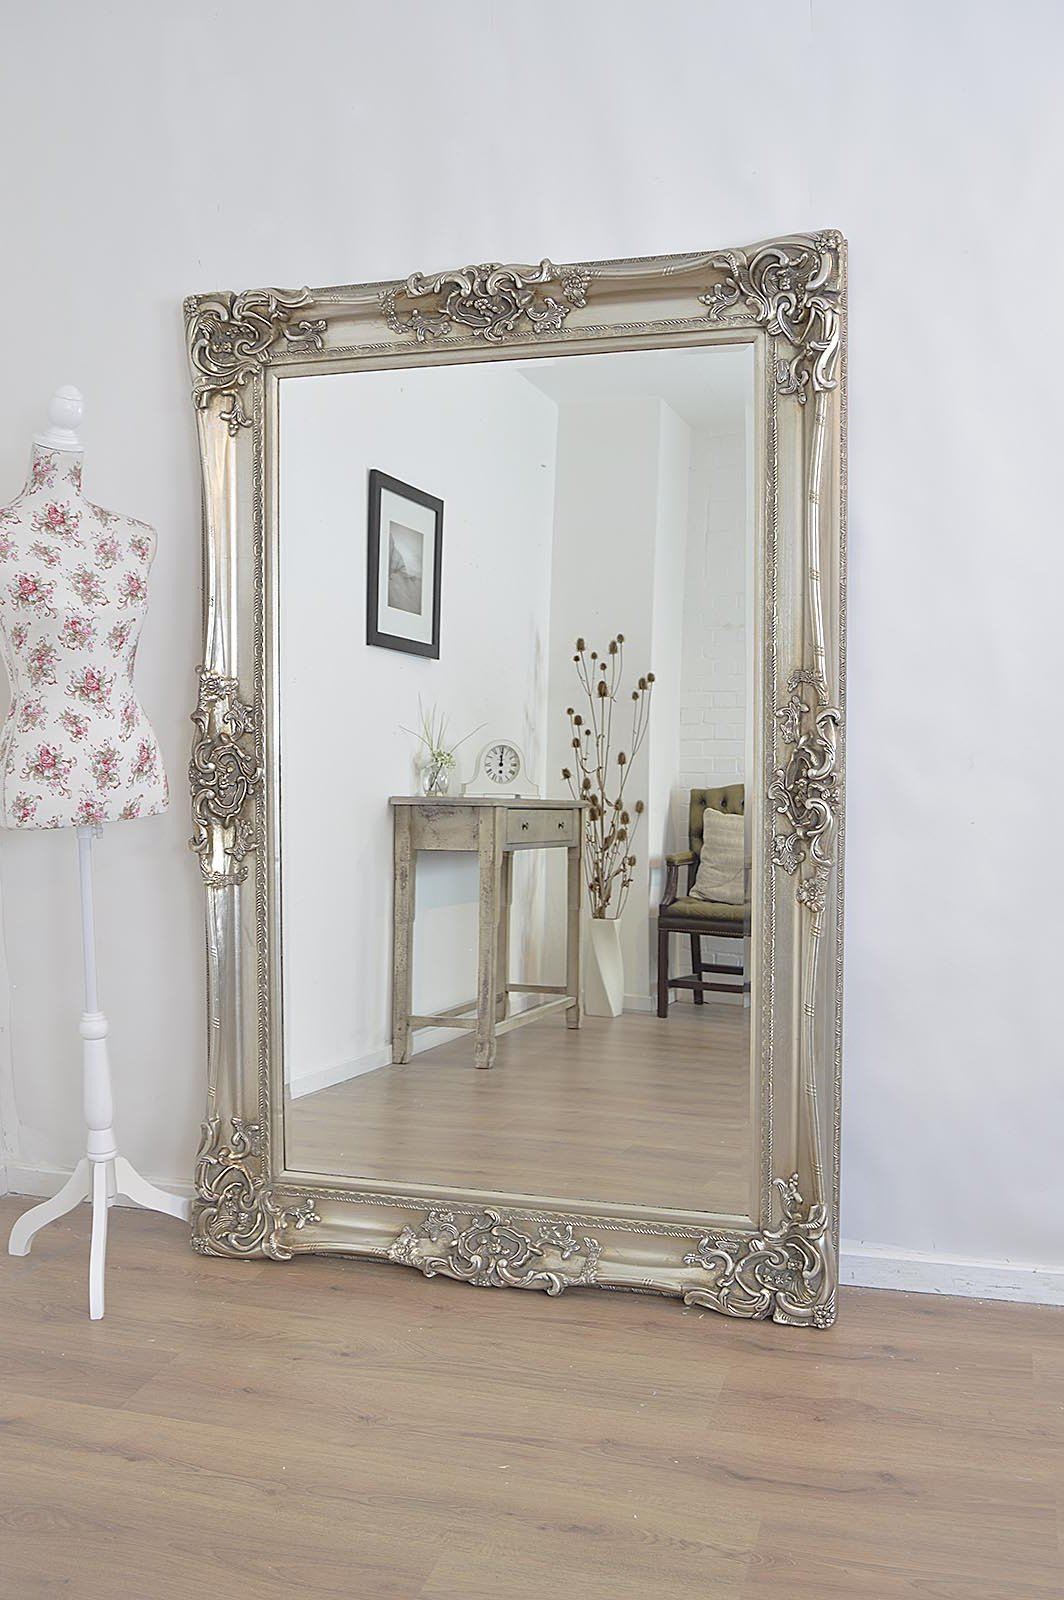 Large Full Length Wall Mirrors Regarding Recent Antique Full Length Wall Mirrors Wood Framed Mirror Clip Art (View 15 of 20)